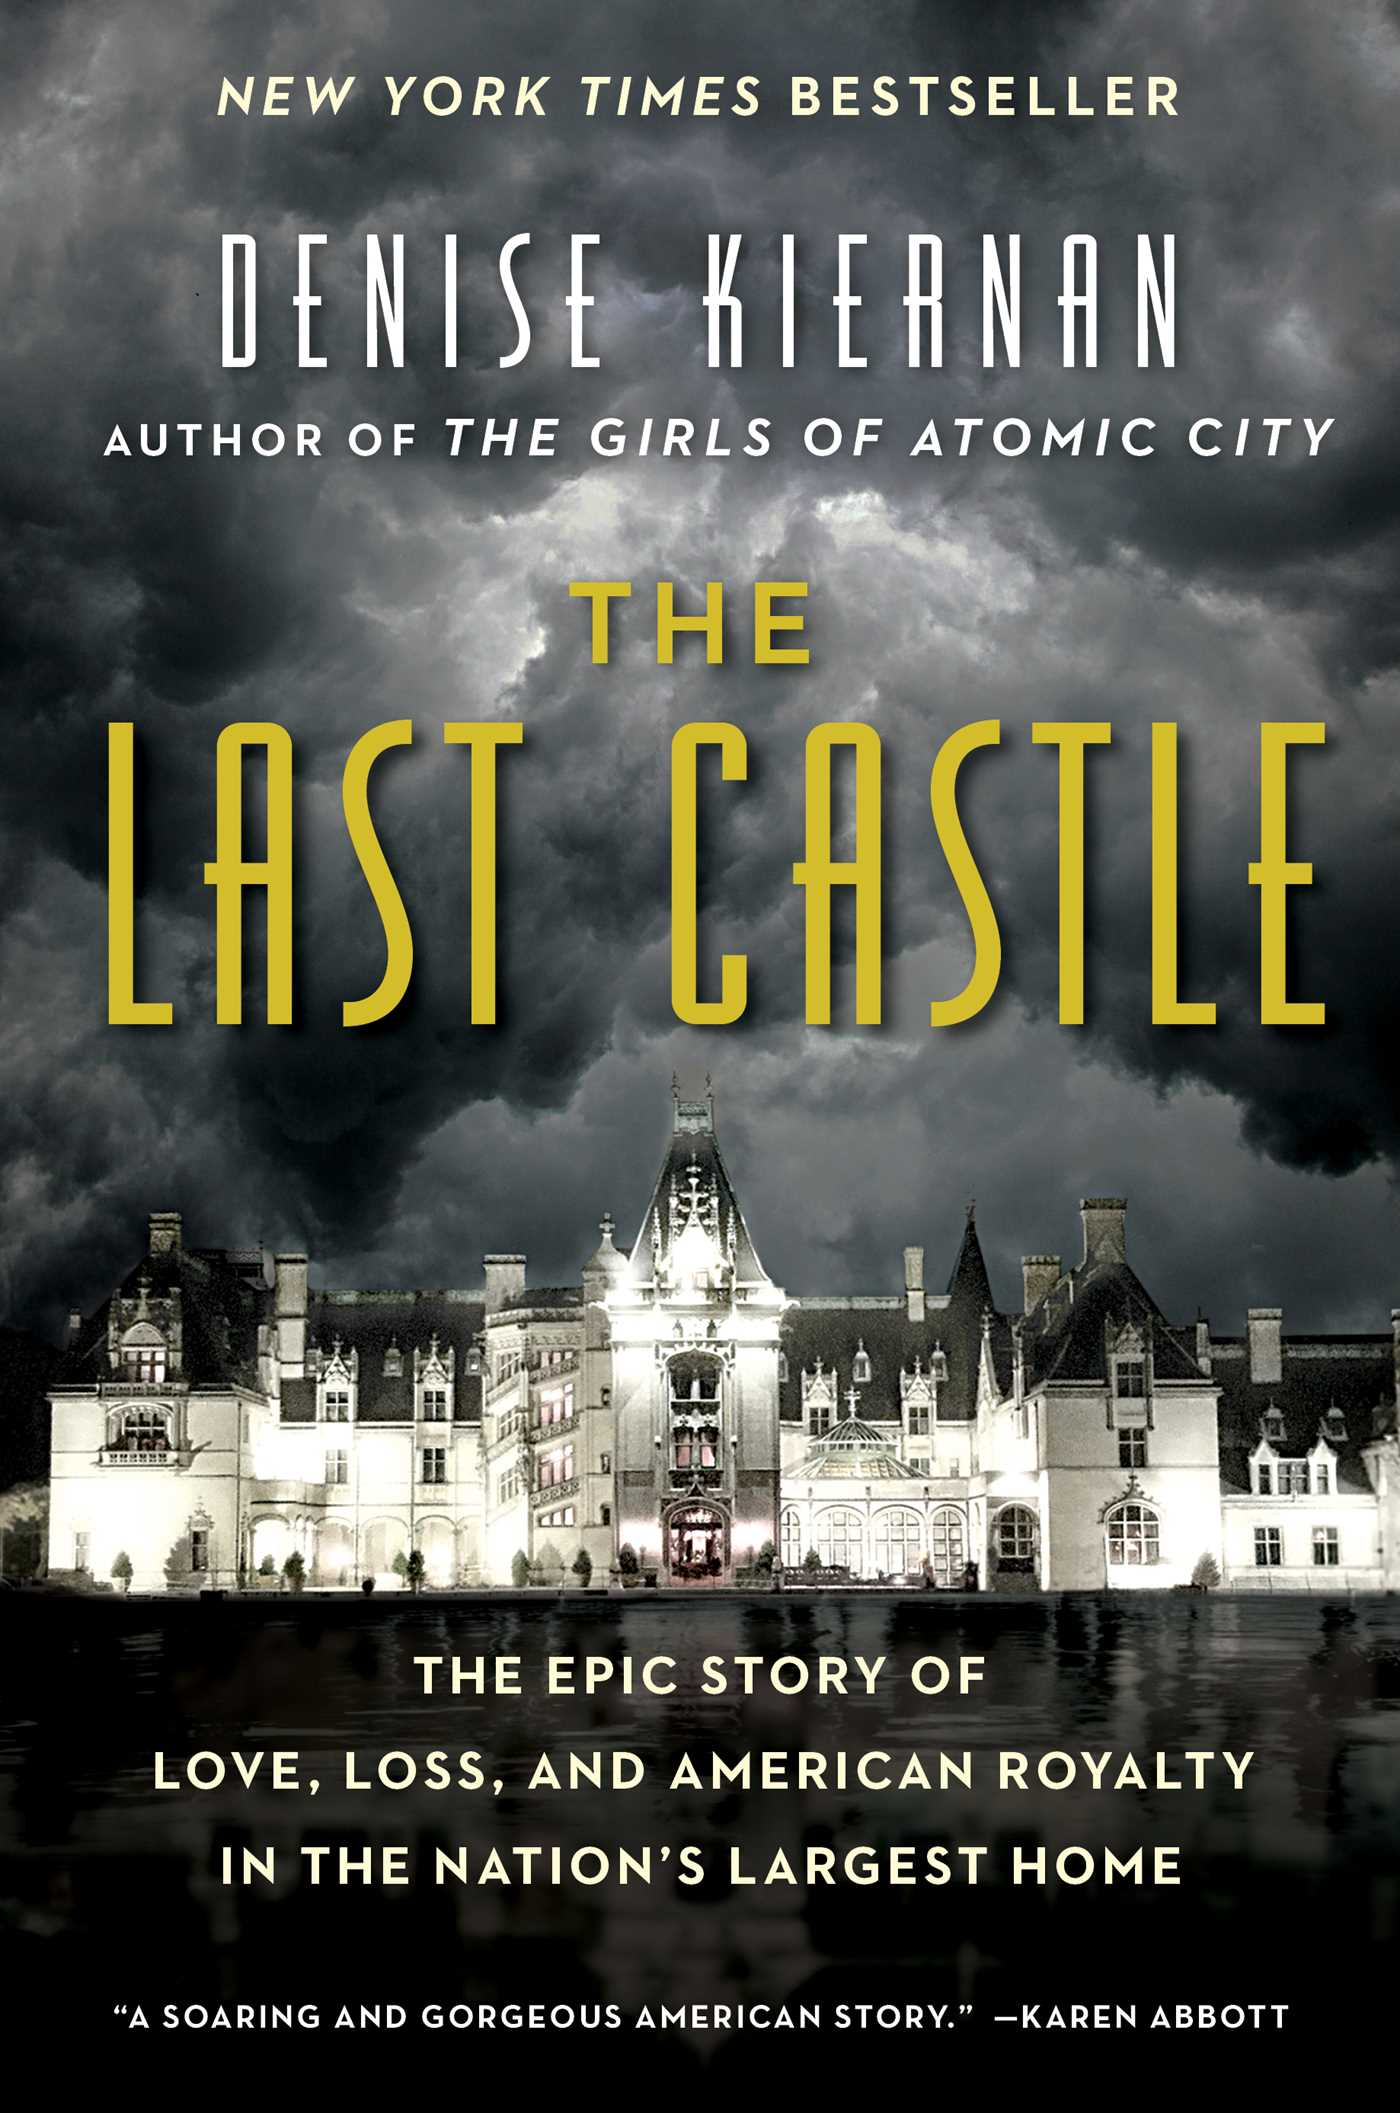 The last castle 9781476794044 hr